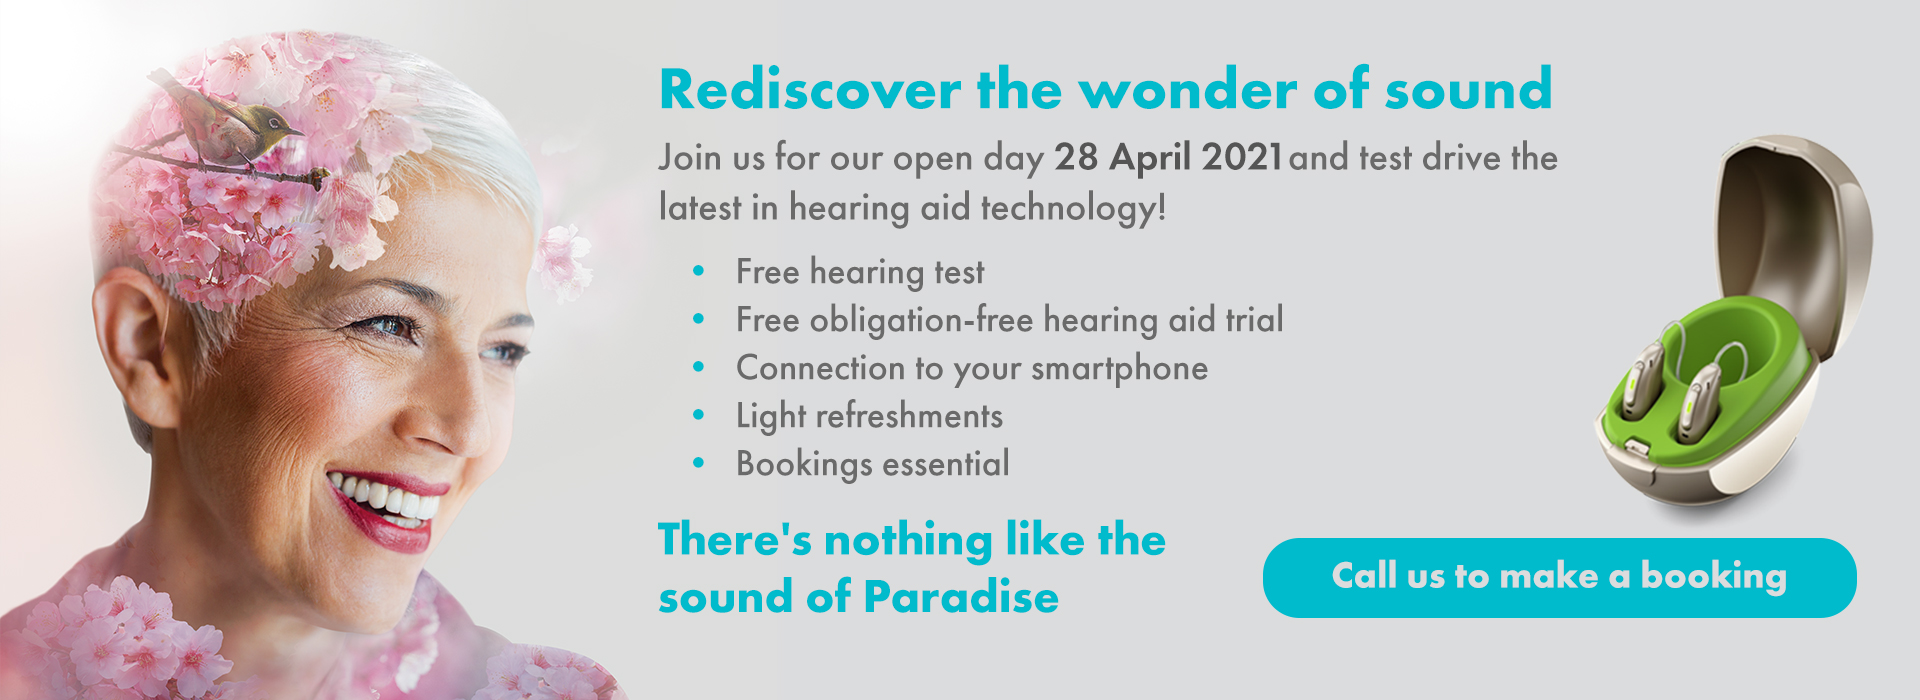 Perth Hearing & Tinnitus Clinic Open Day 28 April 2021